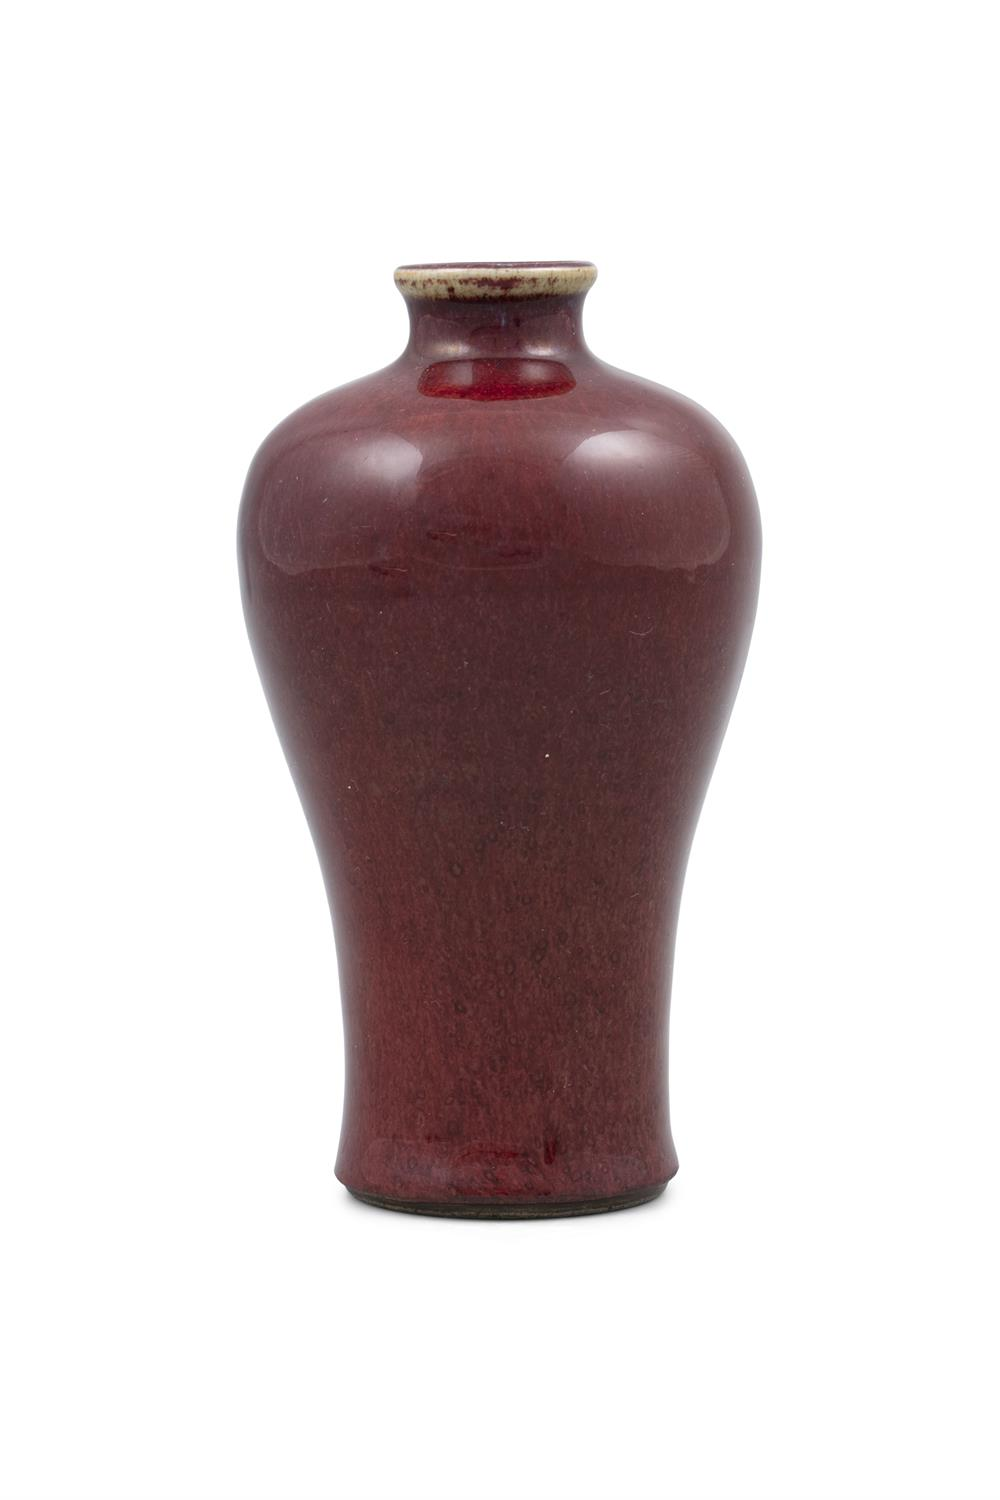 A FLAMBE GLAZED PORCELAIN MEIPING VASE China, Qing Dynasty, Most likely Kangxi period Bearing - Image 21 of 29